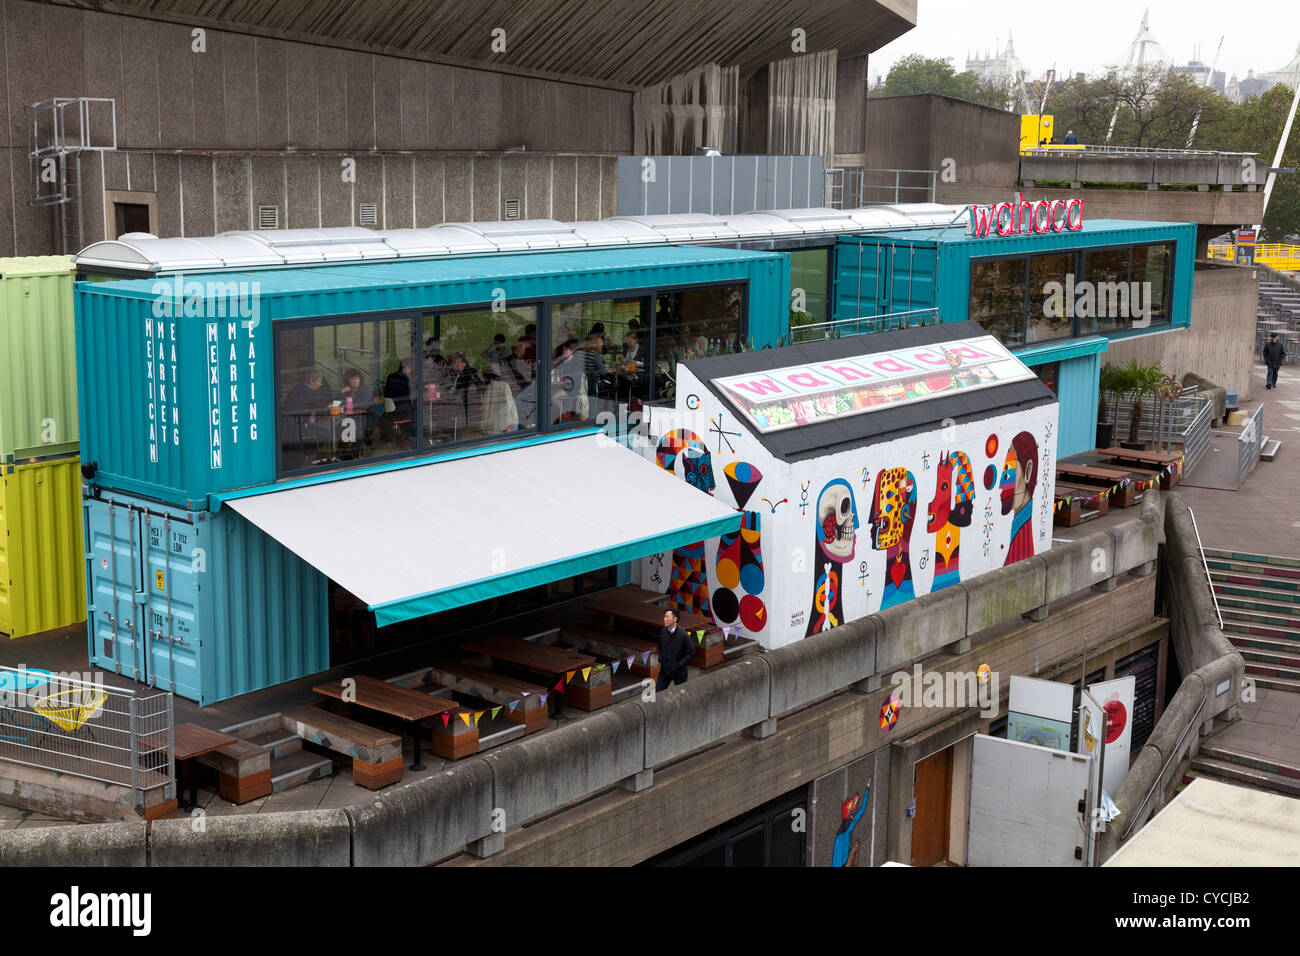 39 wahaca 39 mexican restaurant on london 39 s south bank constructed from stock photo royalty free - Wahaca shipping container restaurant ...